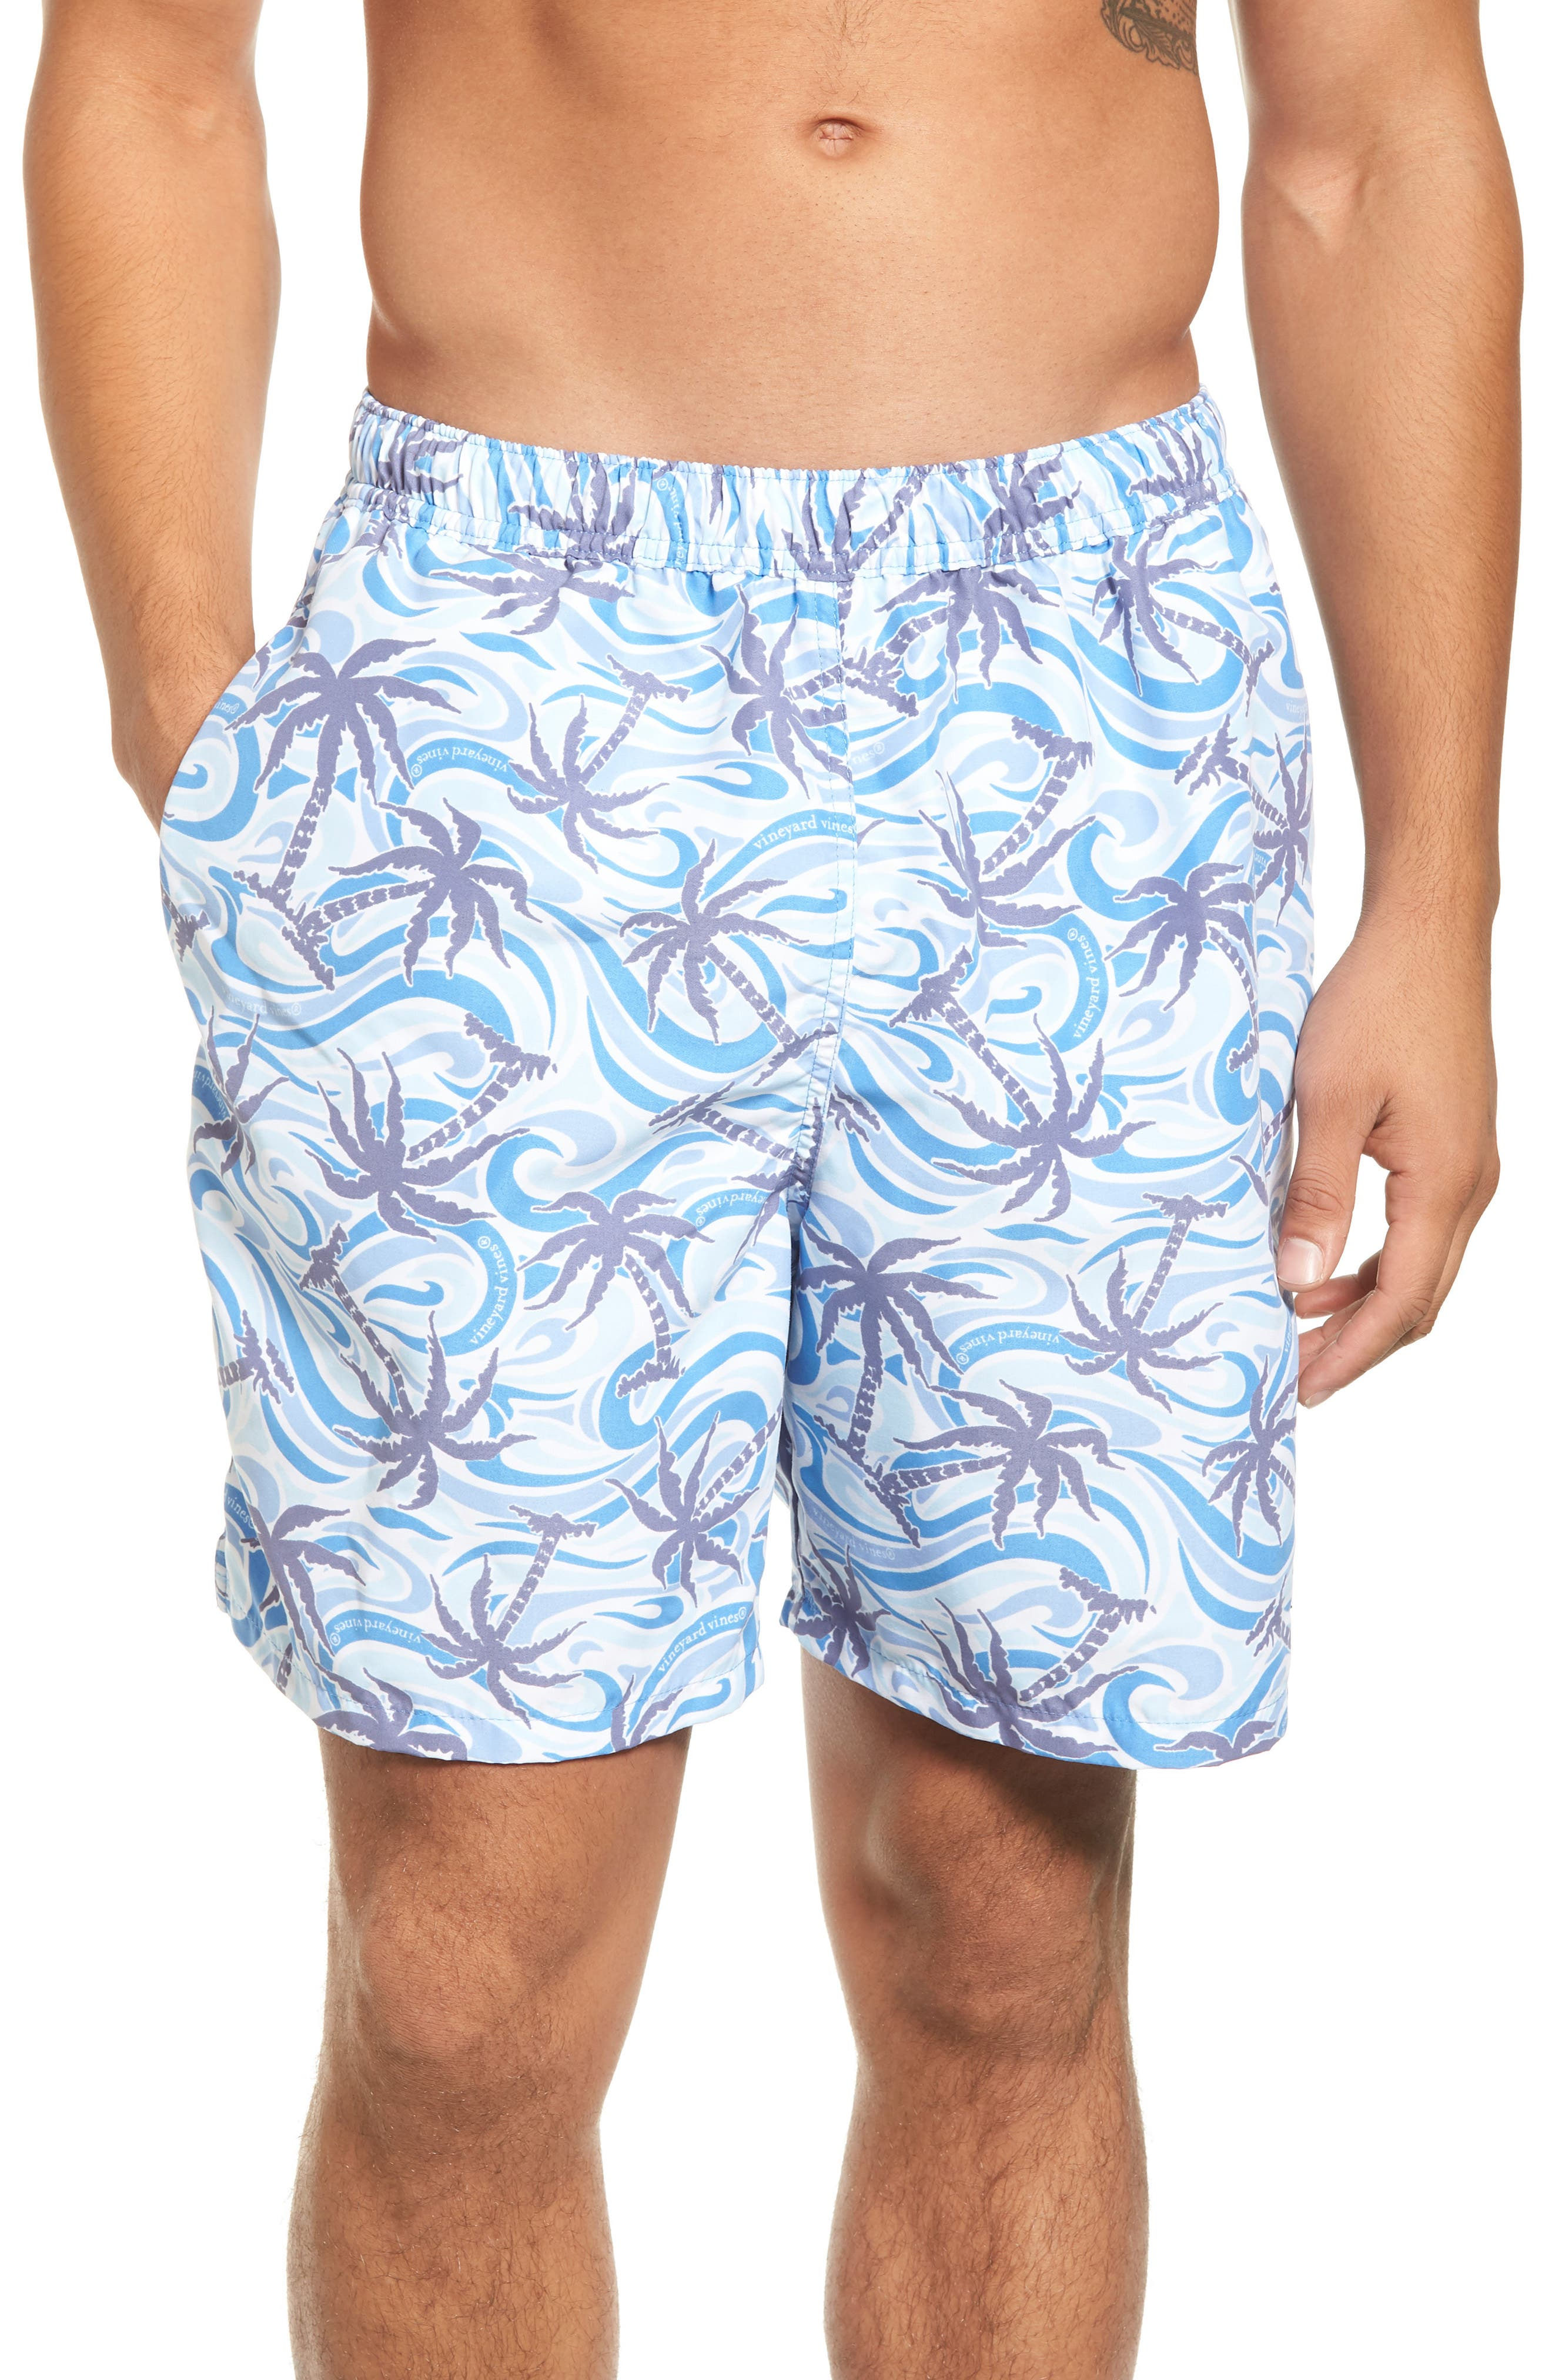 Chappy Wave Palm Tree Swim Trunks,                         Main,                         color, 456